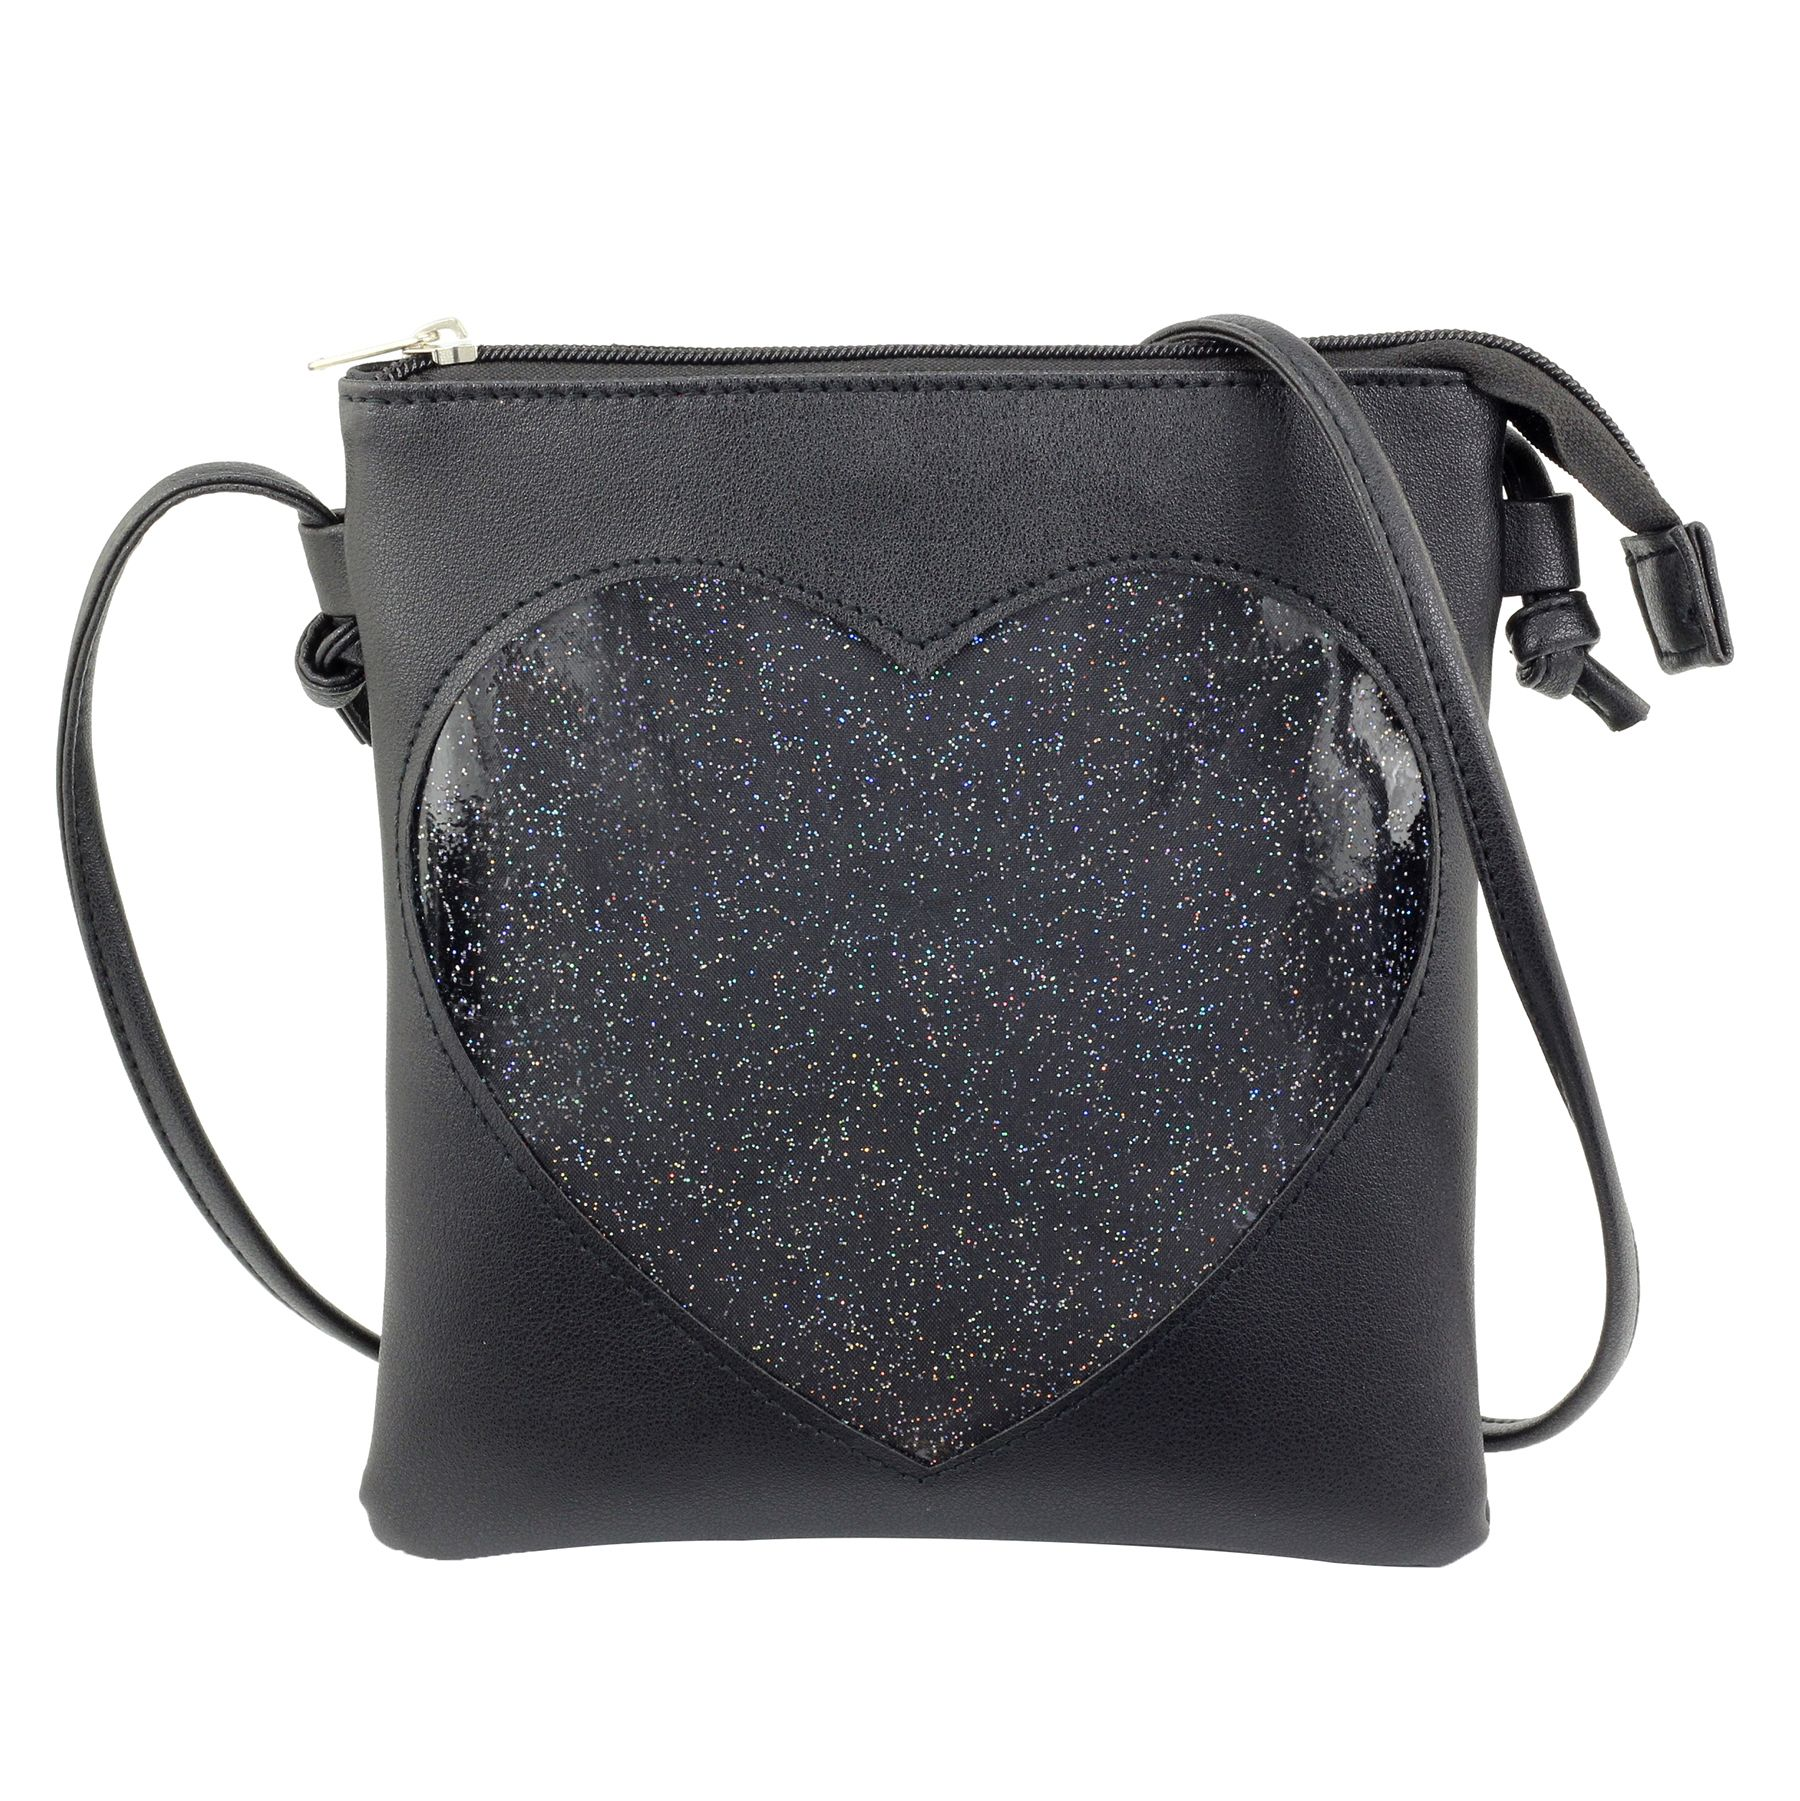 Ita Bag Heart Crossbody Bags for Women Girls Small Clear